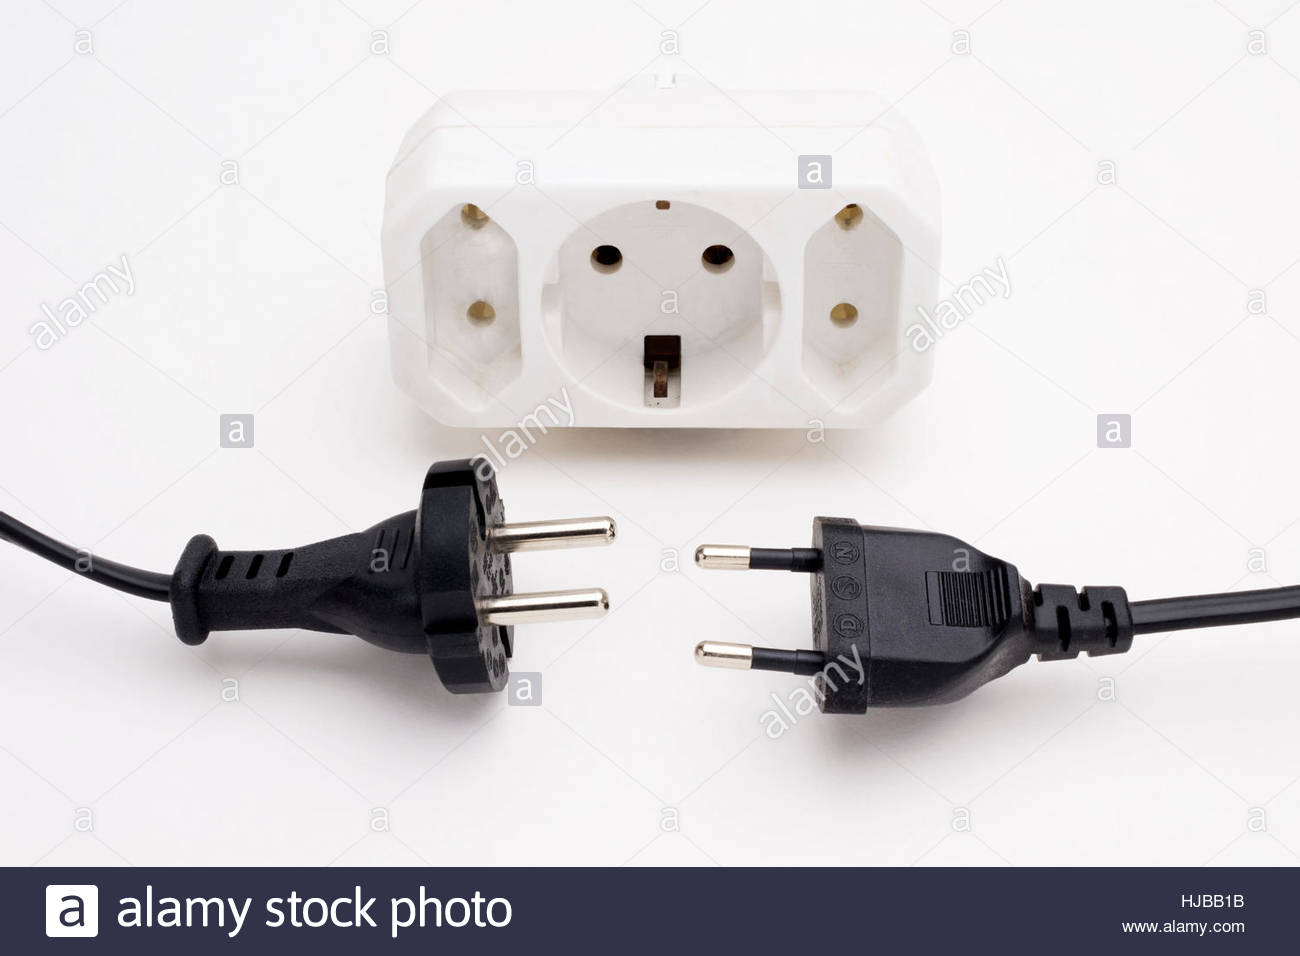 European Socket Stock Photos & European Socket Stock Images - Alamy